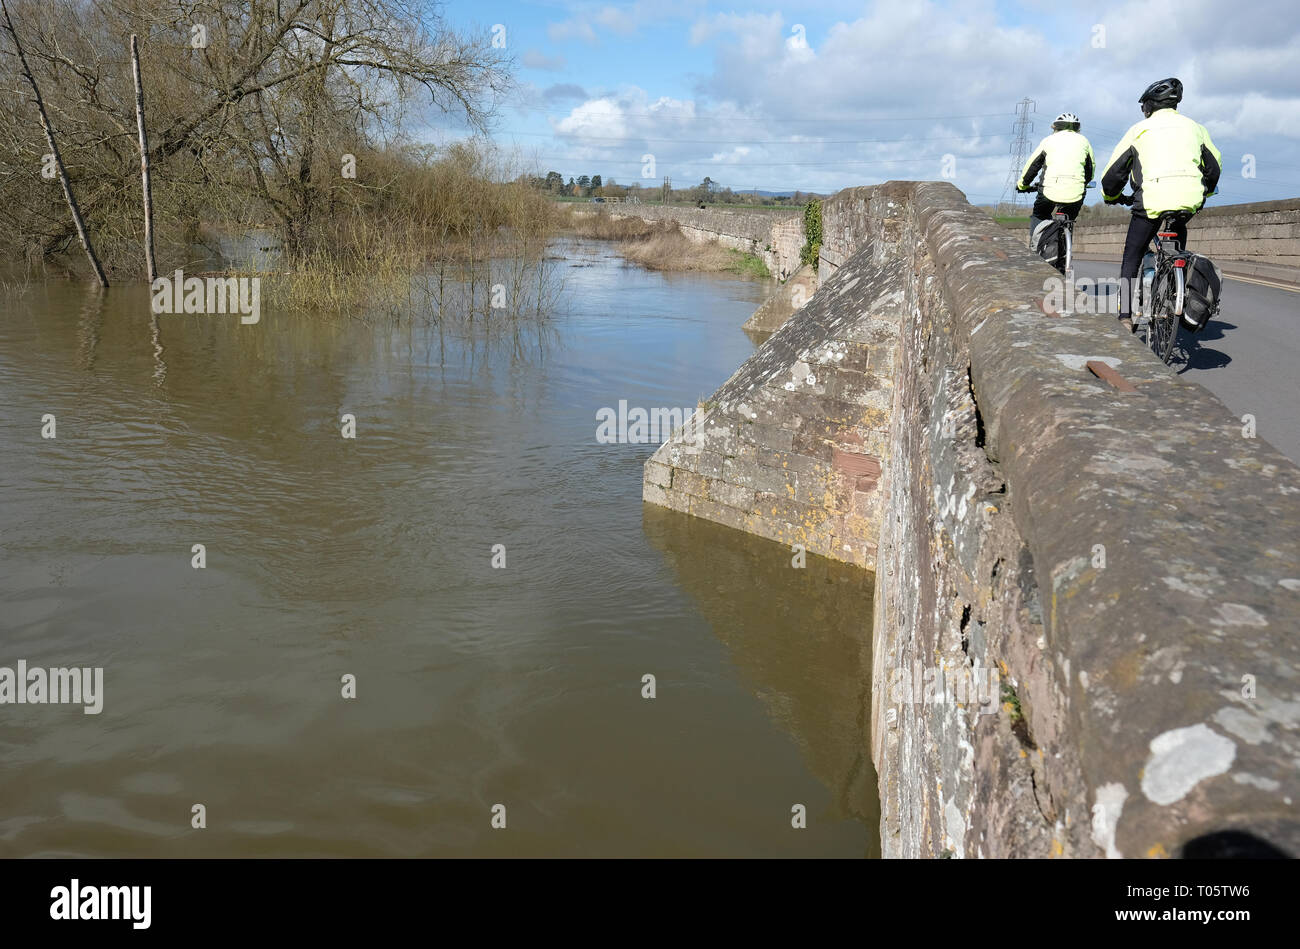 River Lugg Stock Photos & River Lugg Stock Images - Alamy